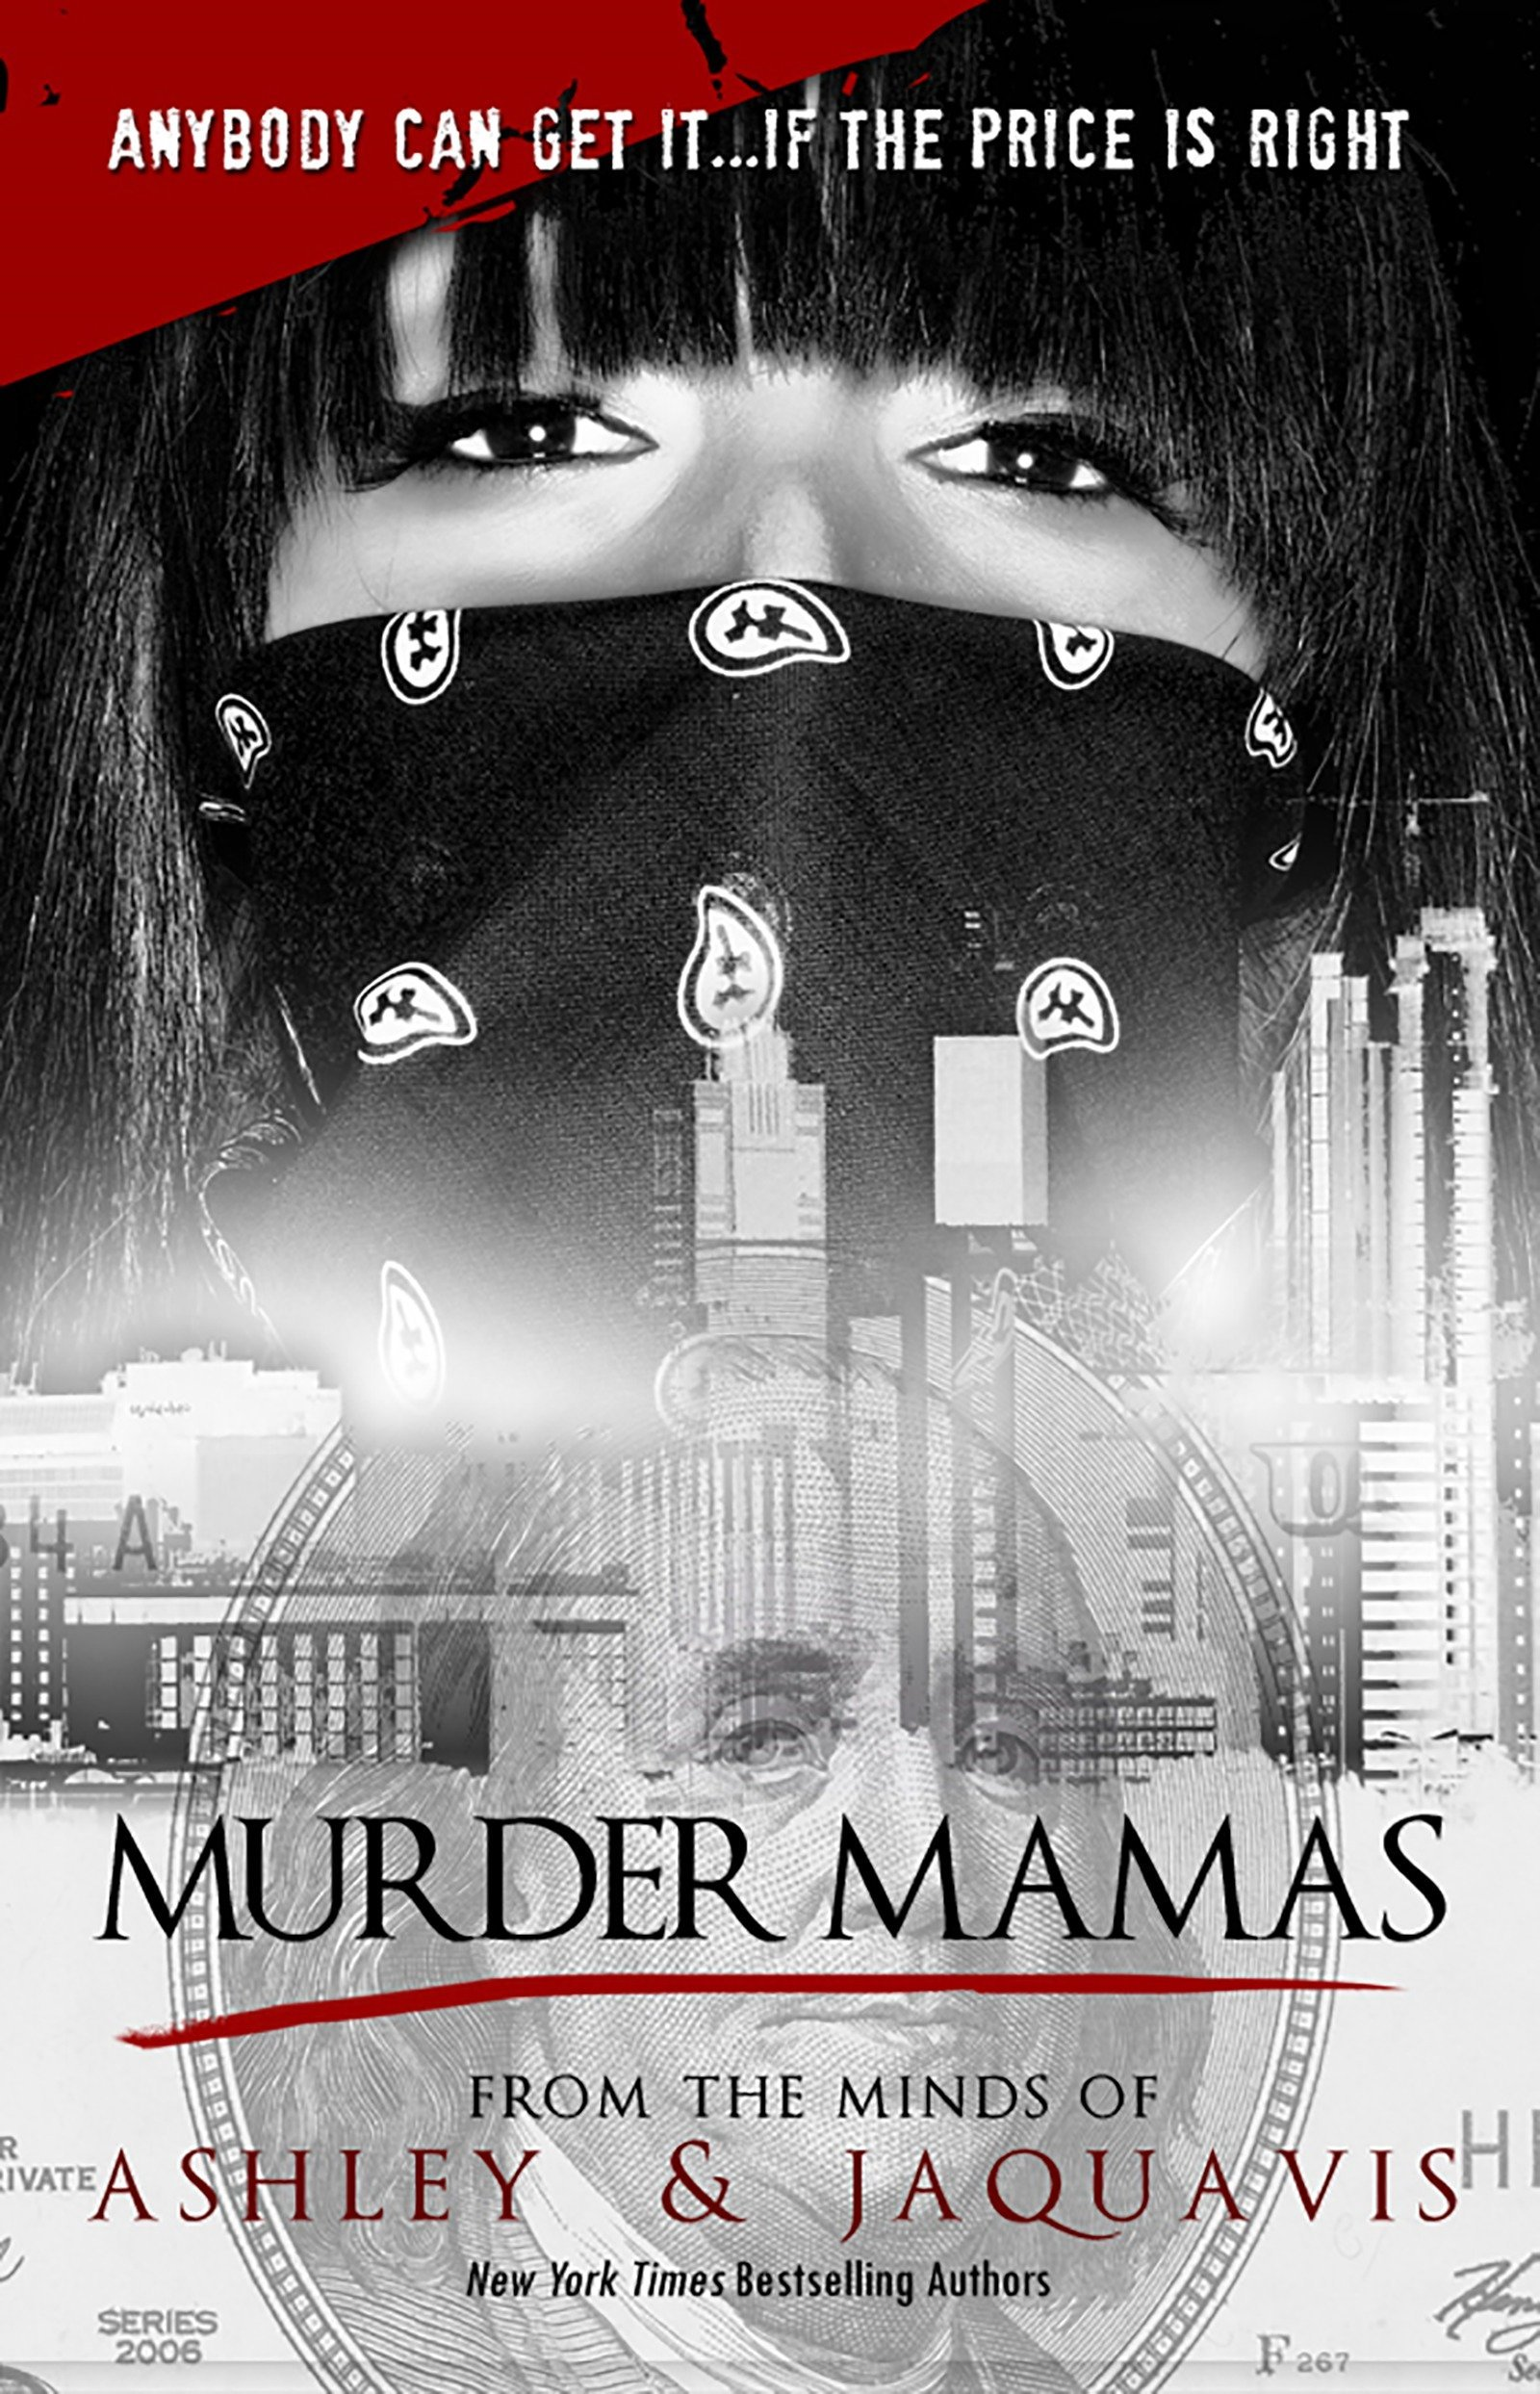 Amazon.com: Murder Mamas (9781601625007): Ashley & JaQuavis ...